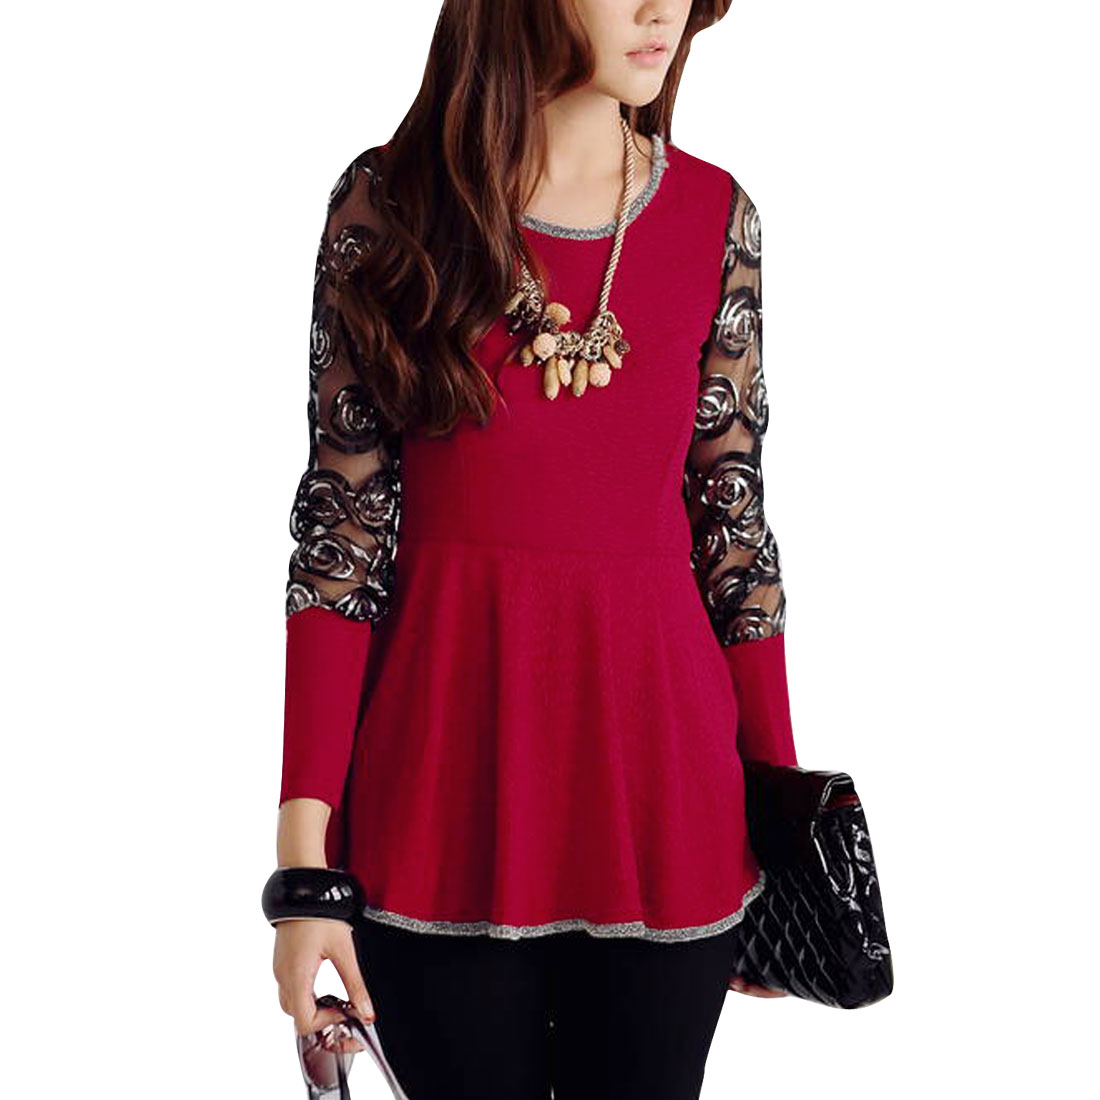 Ladies Round Neck Long Sleeve Foil Detail Peplum Top Red XS